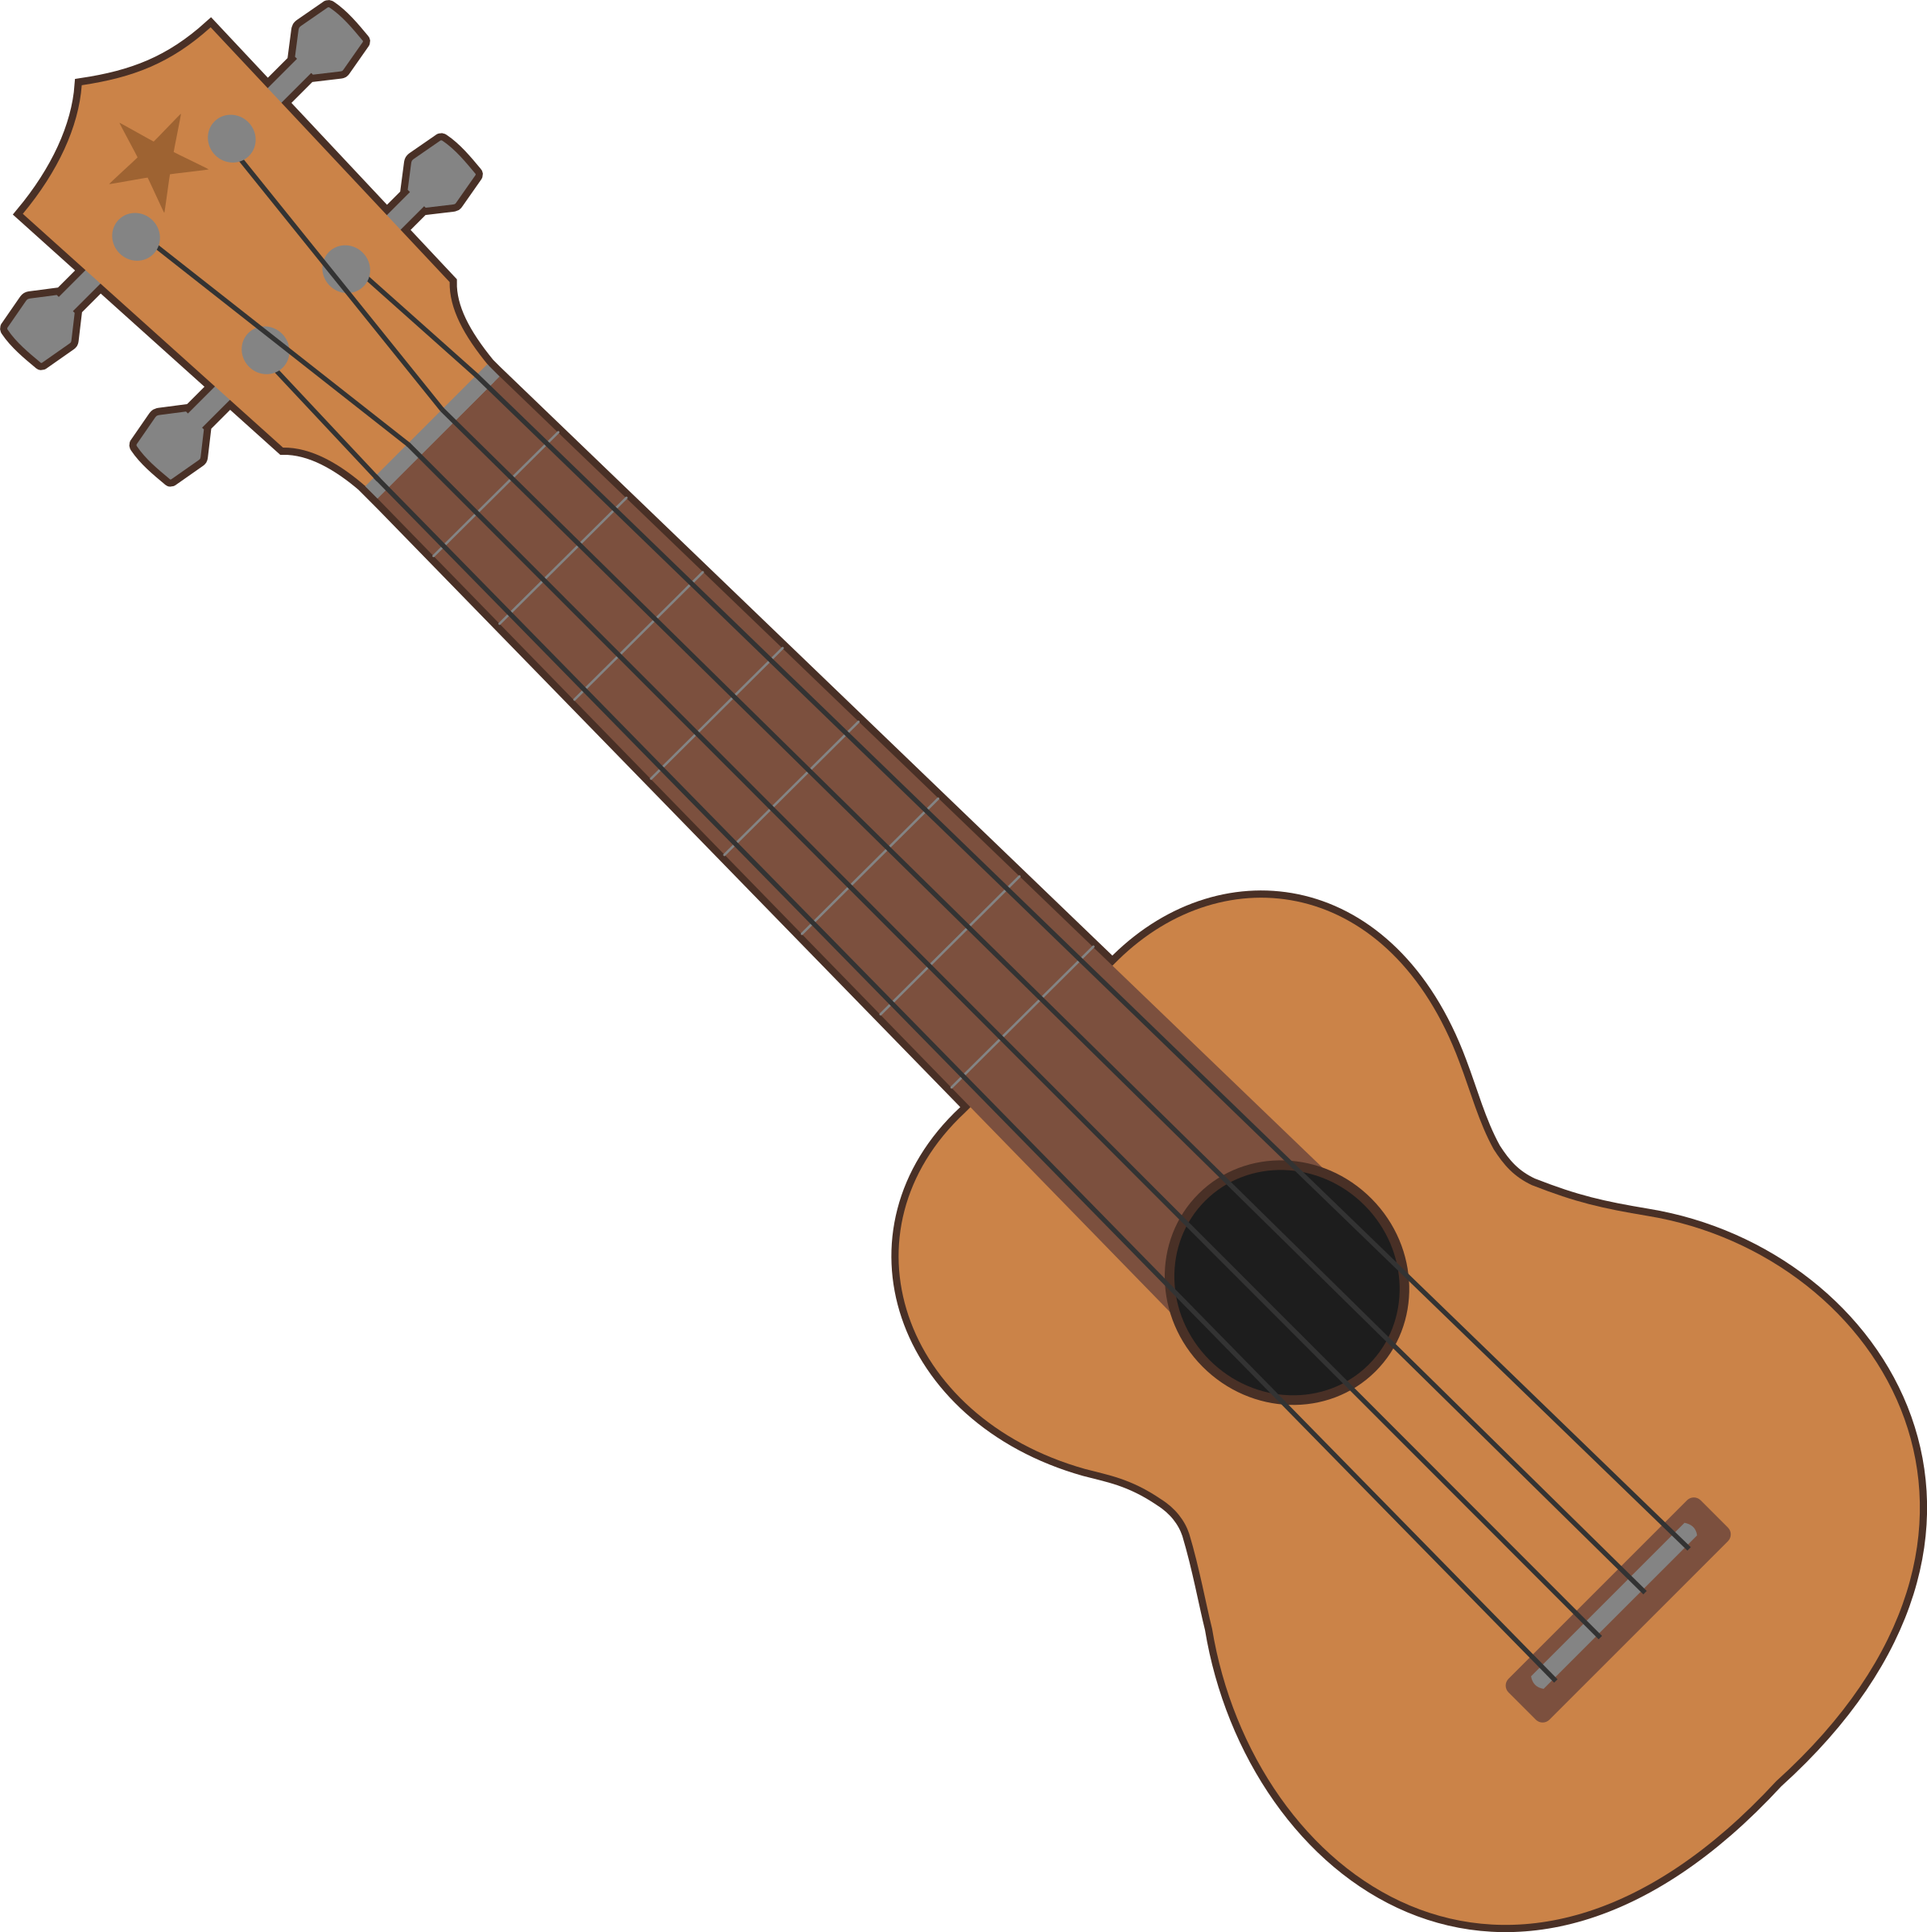 Simple Ukulele Outline by qubodup